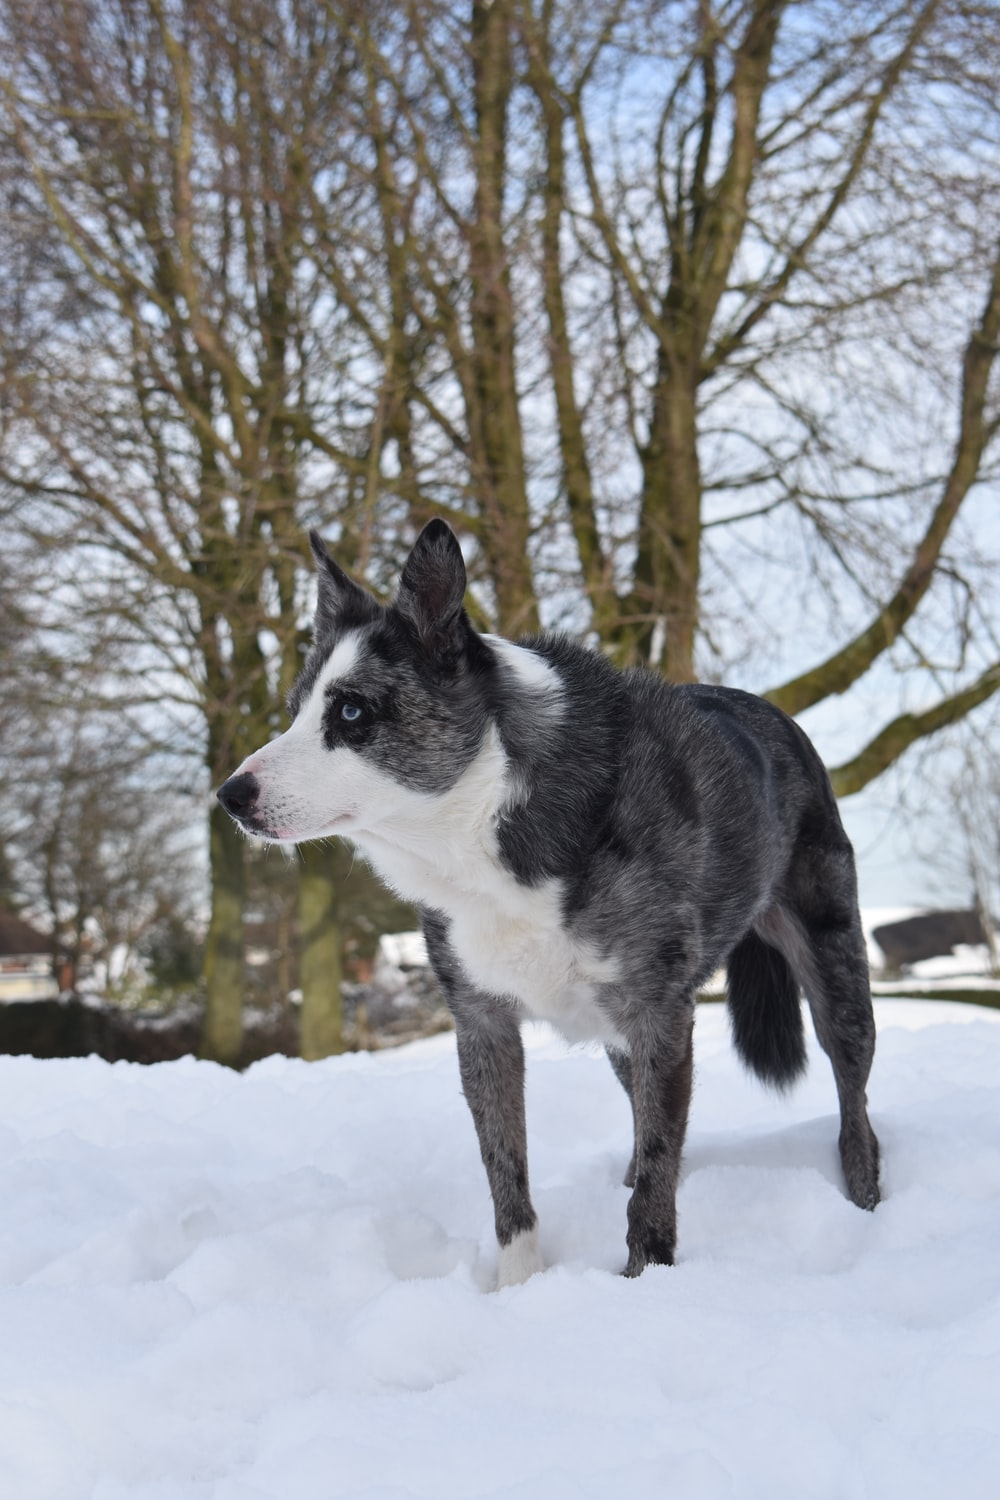 black and white dog standing on snow